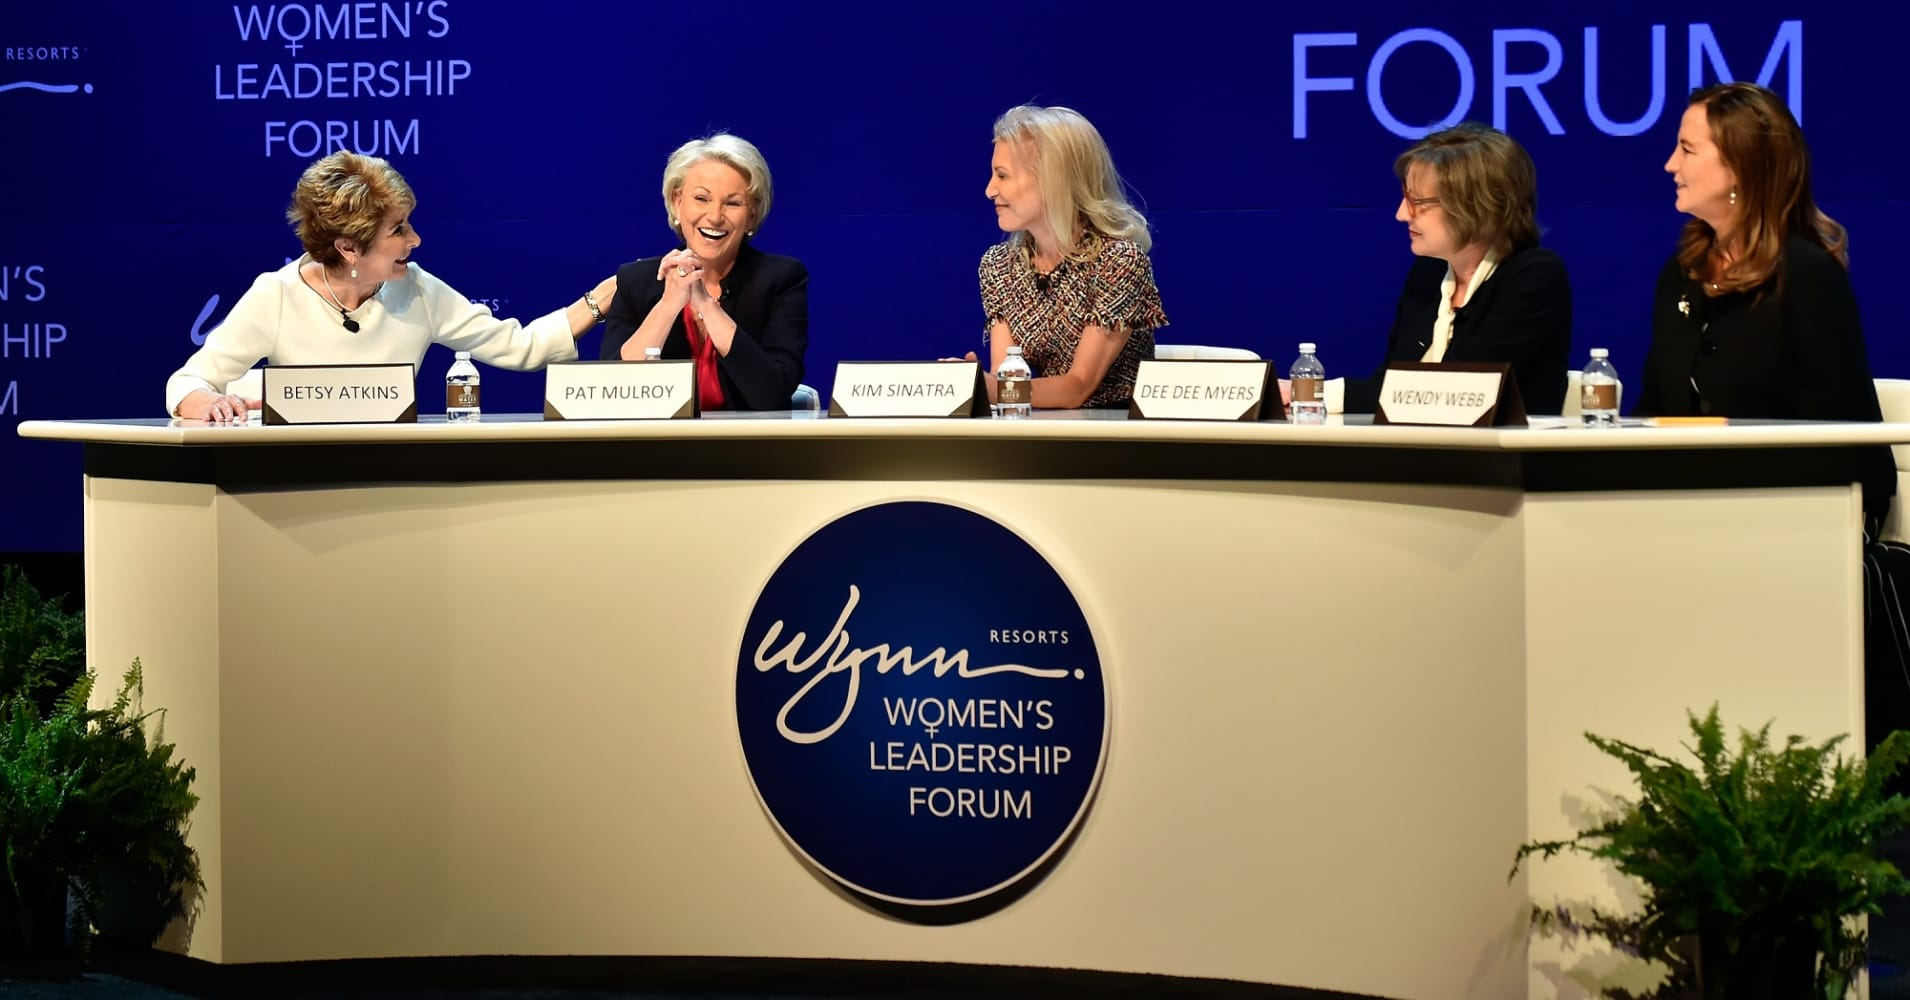 Wynn Resorts appointed Betsy Atkins (left), Dee Dee Myers and Wendy Webb (fourth and fifth from left) to its board earlier this year.